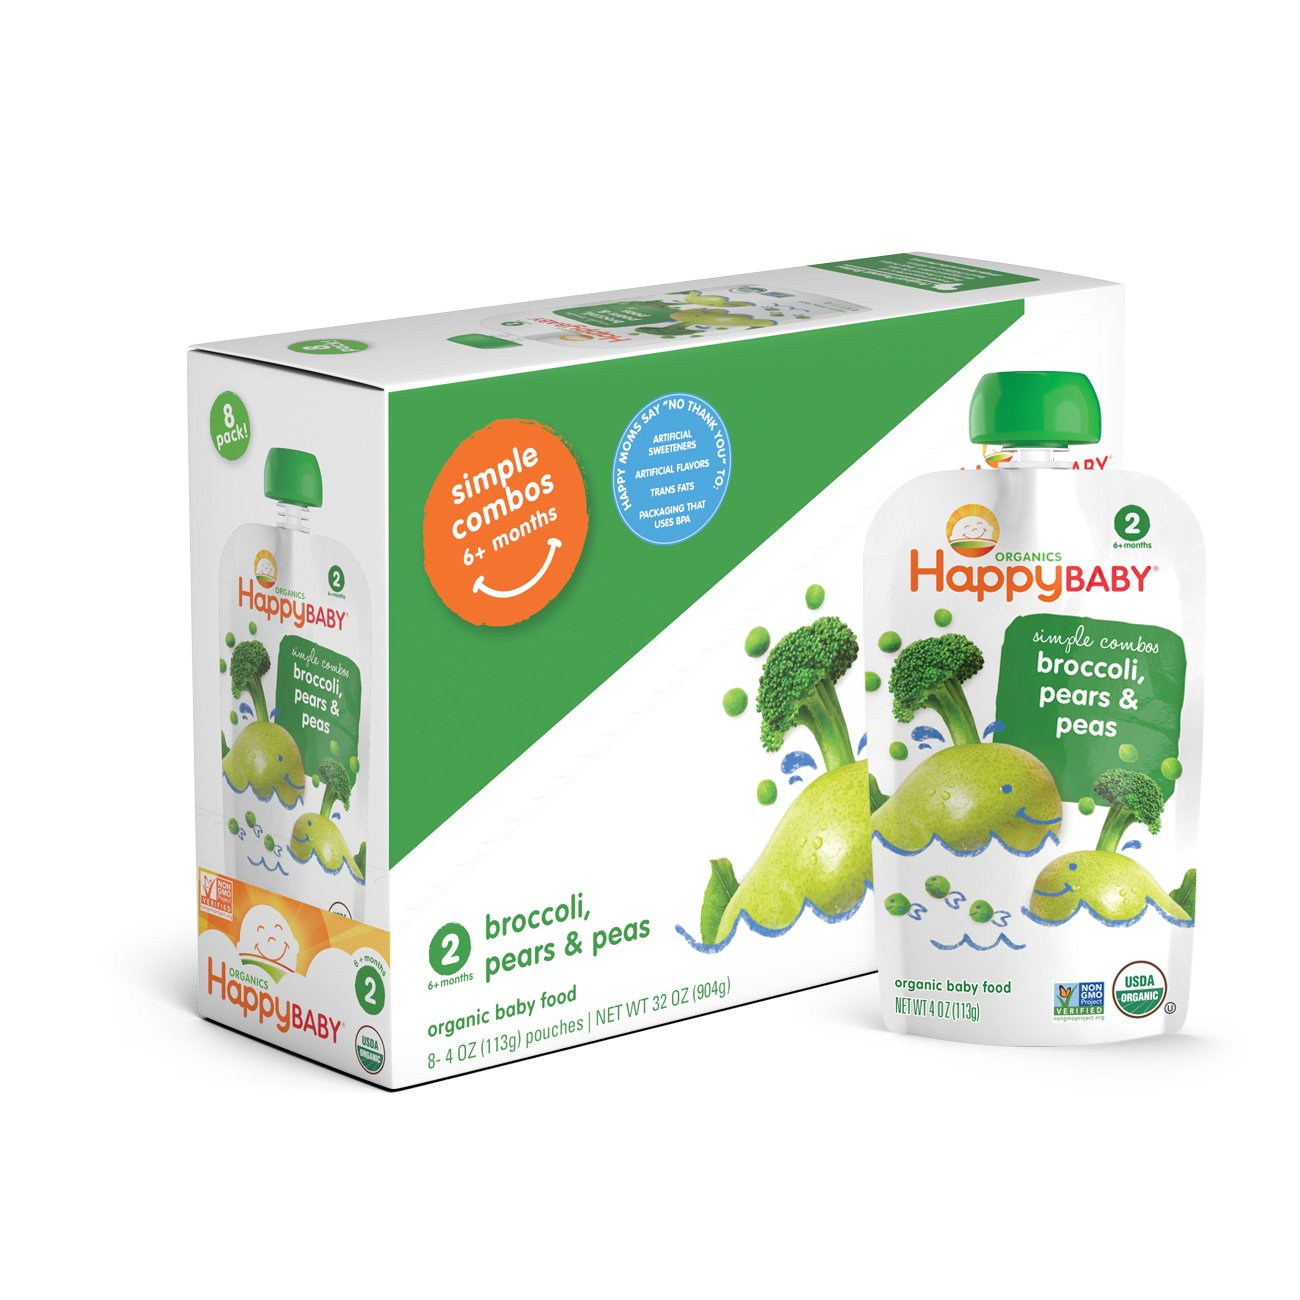 Amazon.com : Happy Baby Organic Stage 2 Baby Food Simple Combos Broccoli Pears & Peas, 4 Ounce Pouch (Pack of 16) Resealable Baby Food Pouches, ...